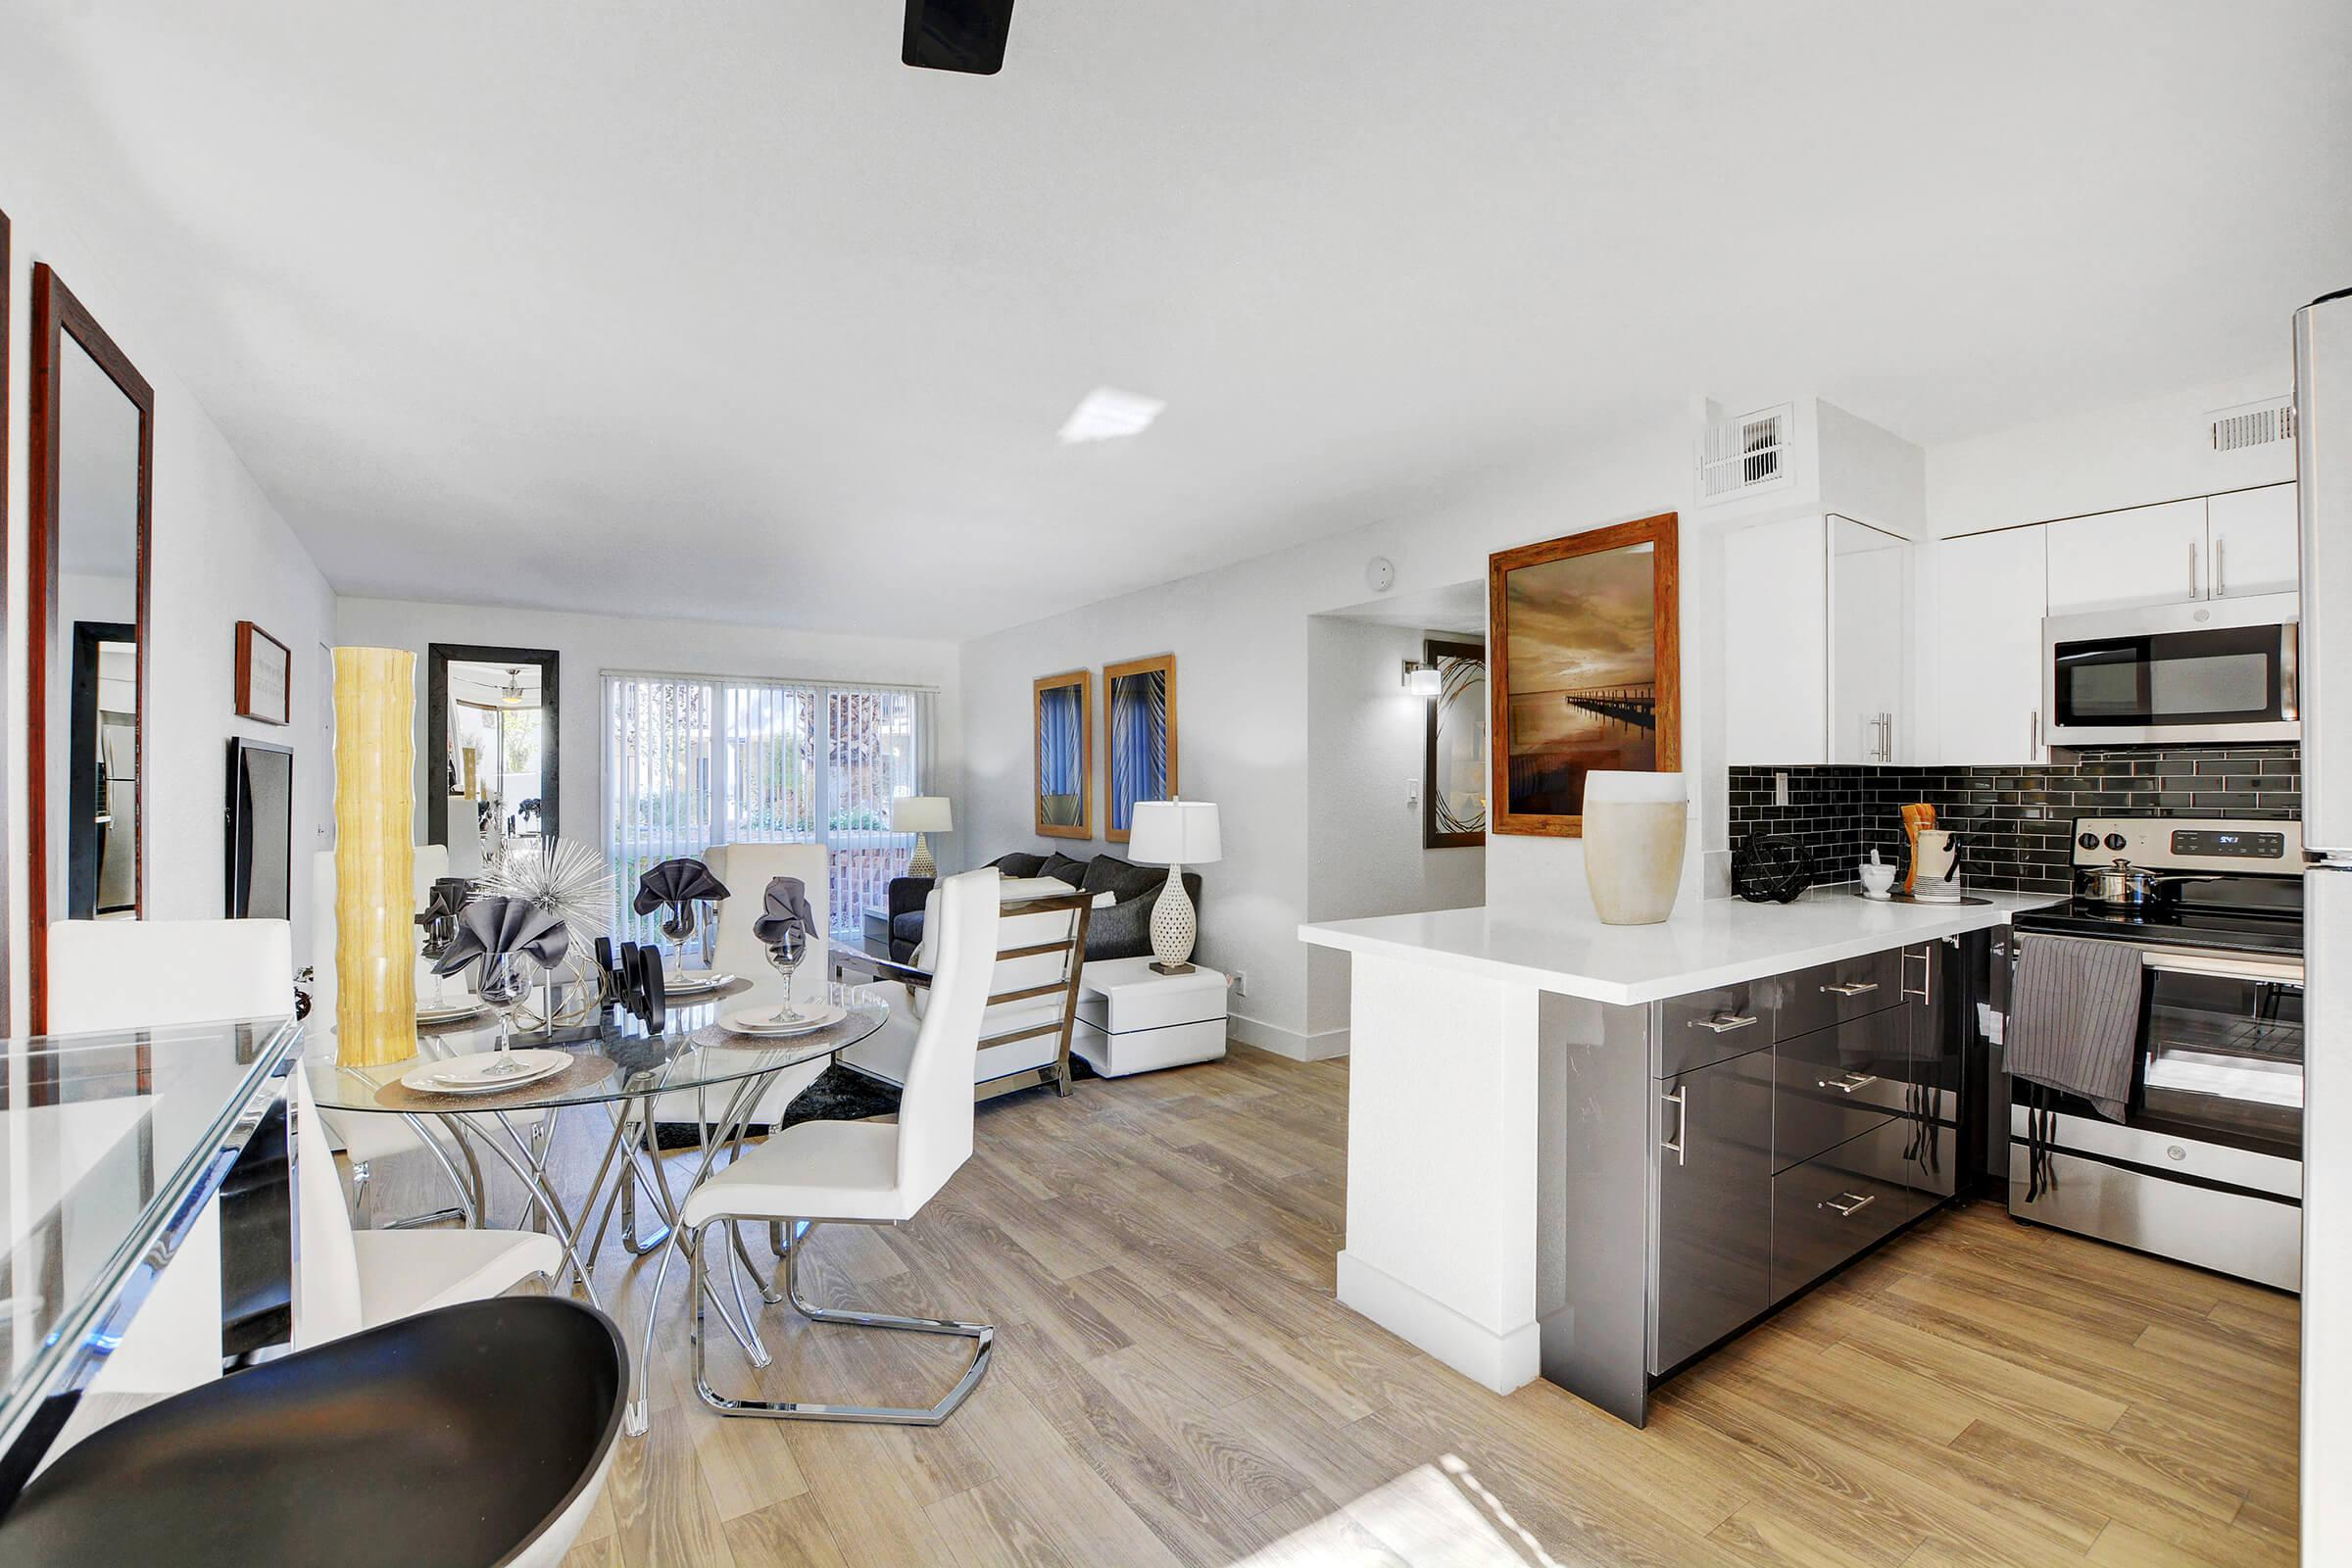 a living room filled with furniture and a counter in a kitchen